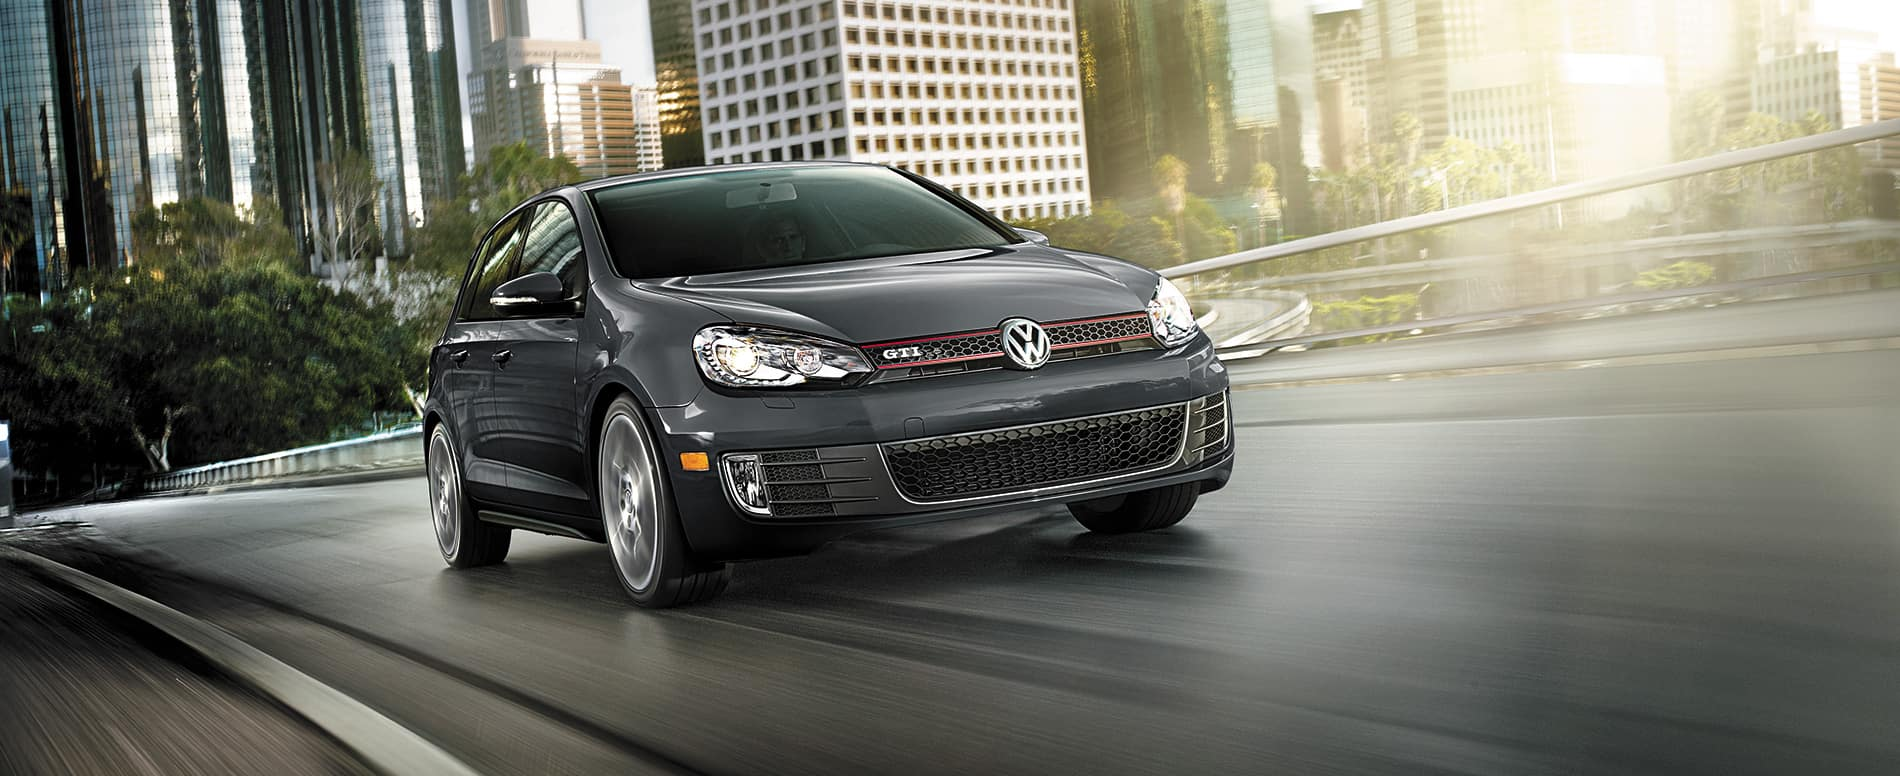 Autobahn Pre-Owned | CPO Volkswagen